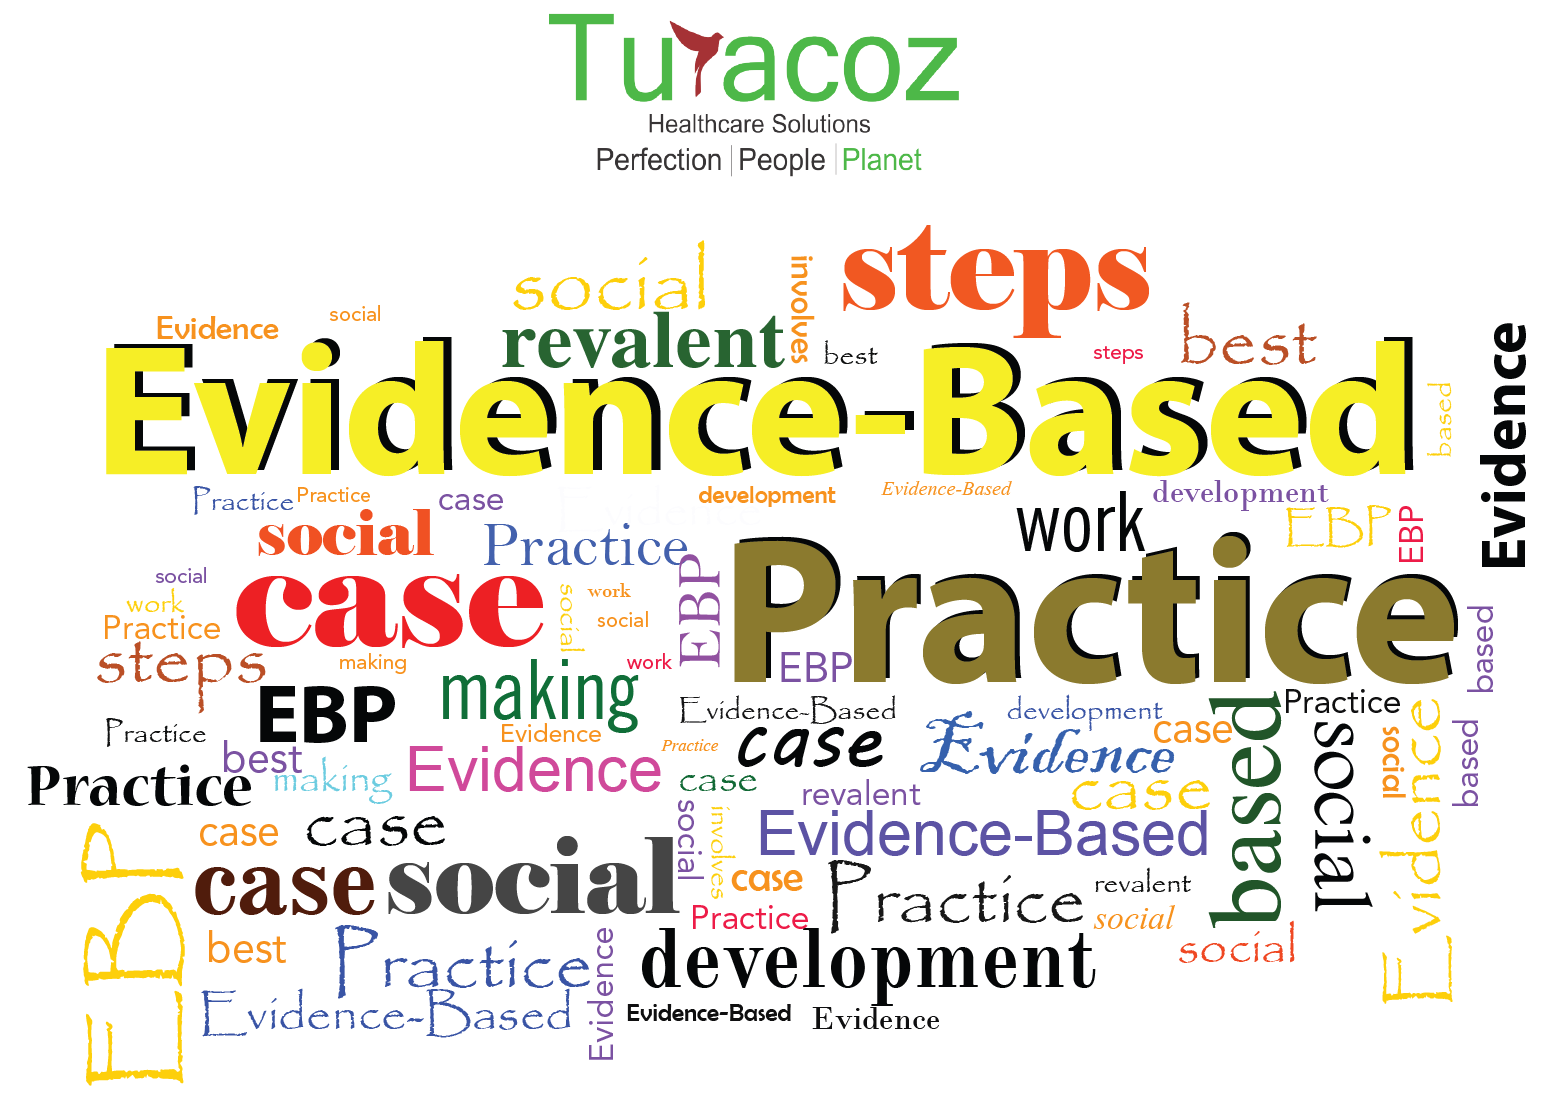 social work in evidence based practice essay